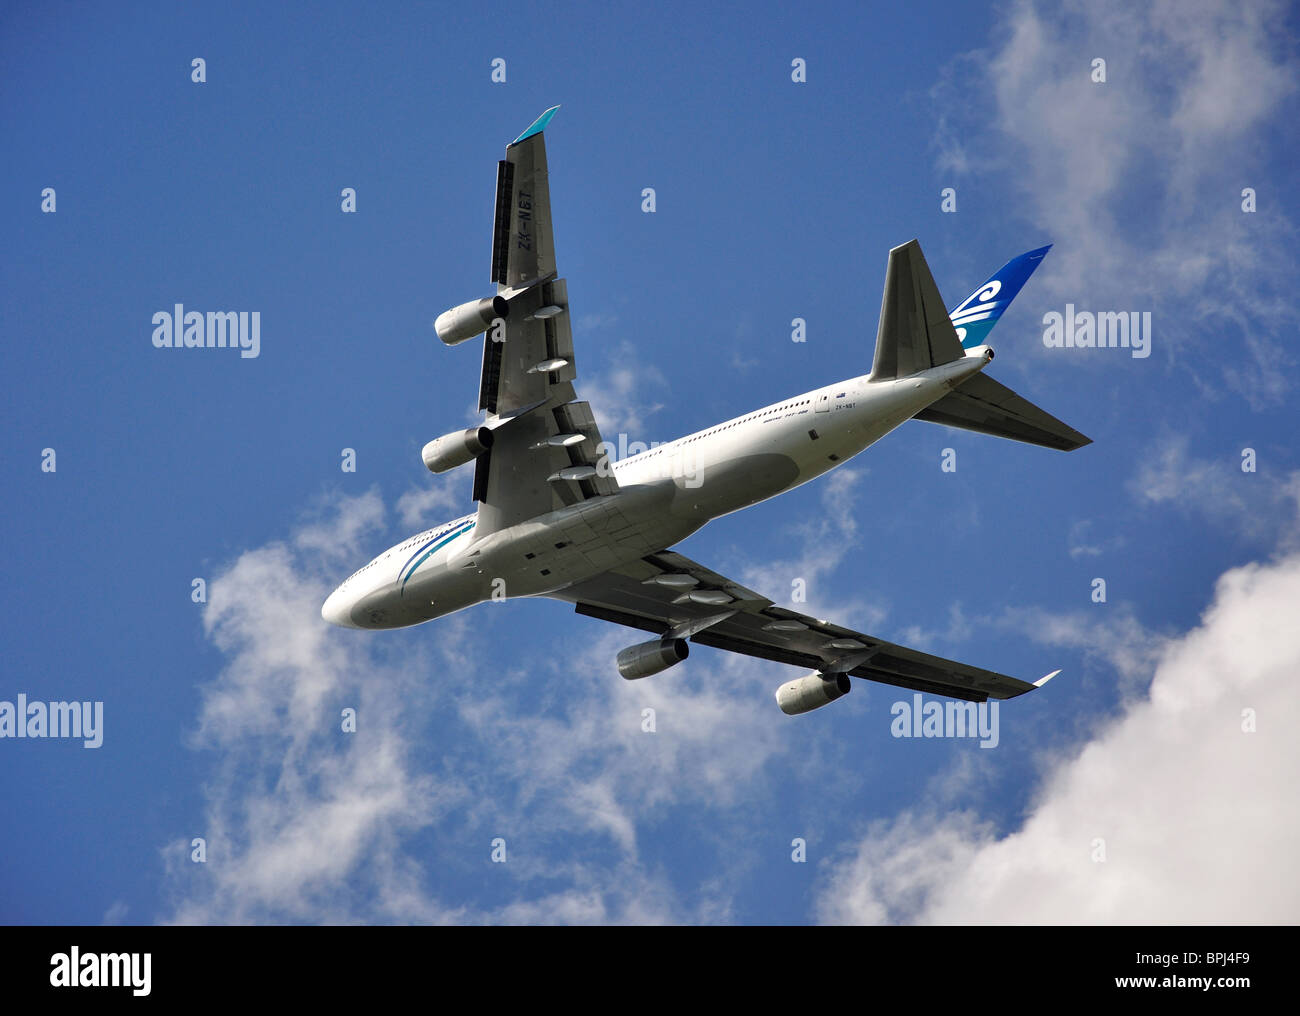 Air New Zealand Boeing 747-400 taking off from Heathrow Airport, Greater London, England, United Kingdom - Stock Image